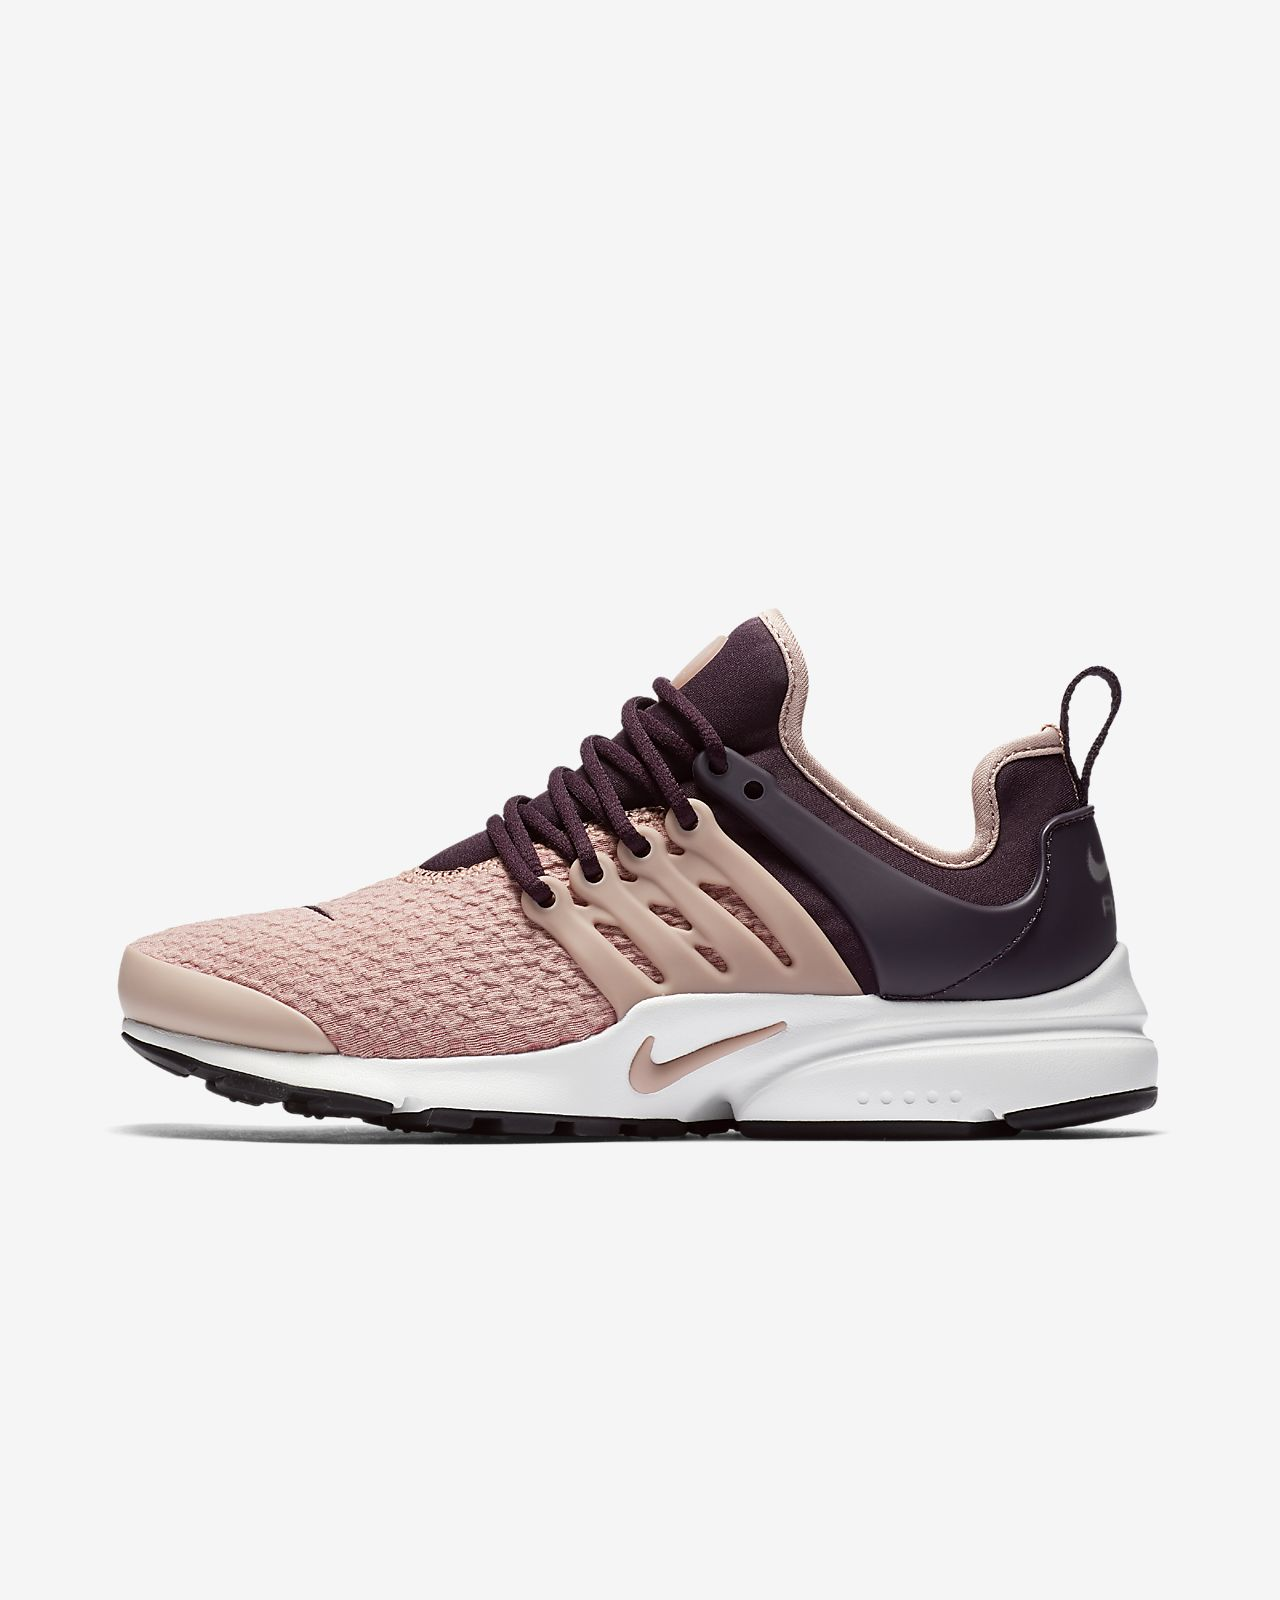 watch 0db18 17dad ... Nike Air Presto Women s Shoe